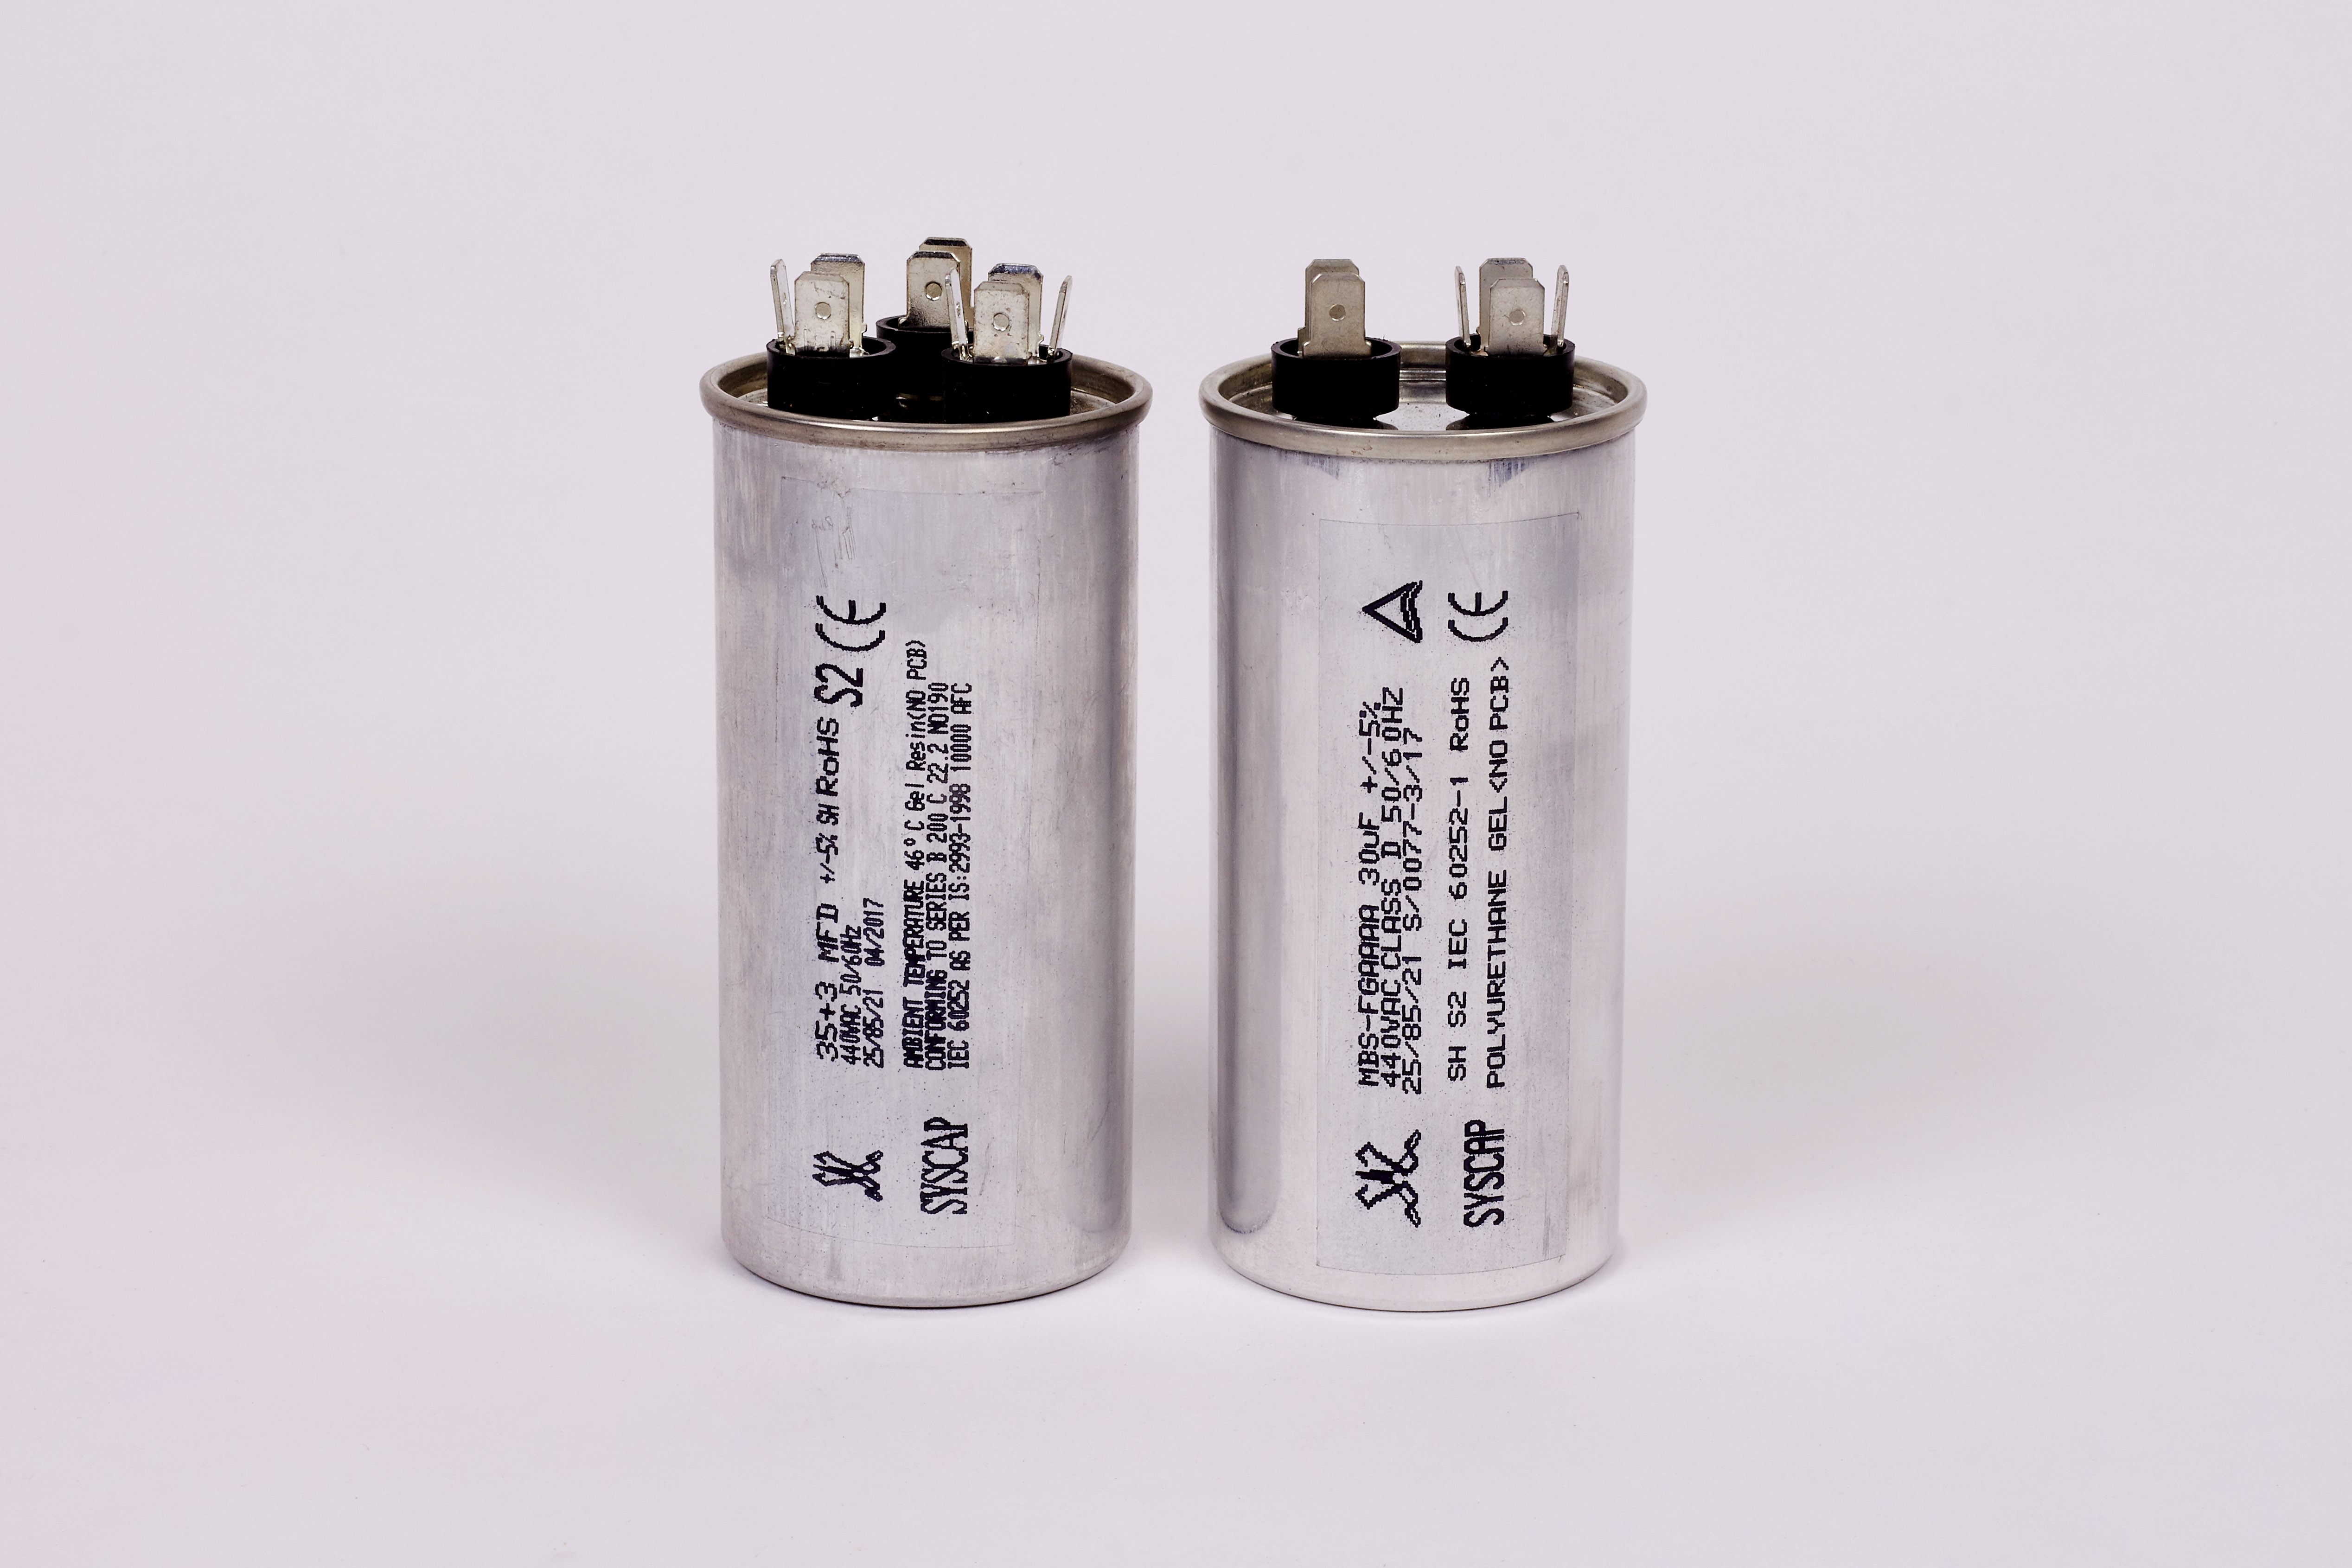 aluminium can constrcution with an integrated safety mechanism which  disconnects the capacitor from the circuit in the event of catastrophic  failure